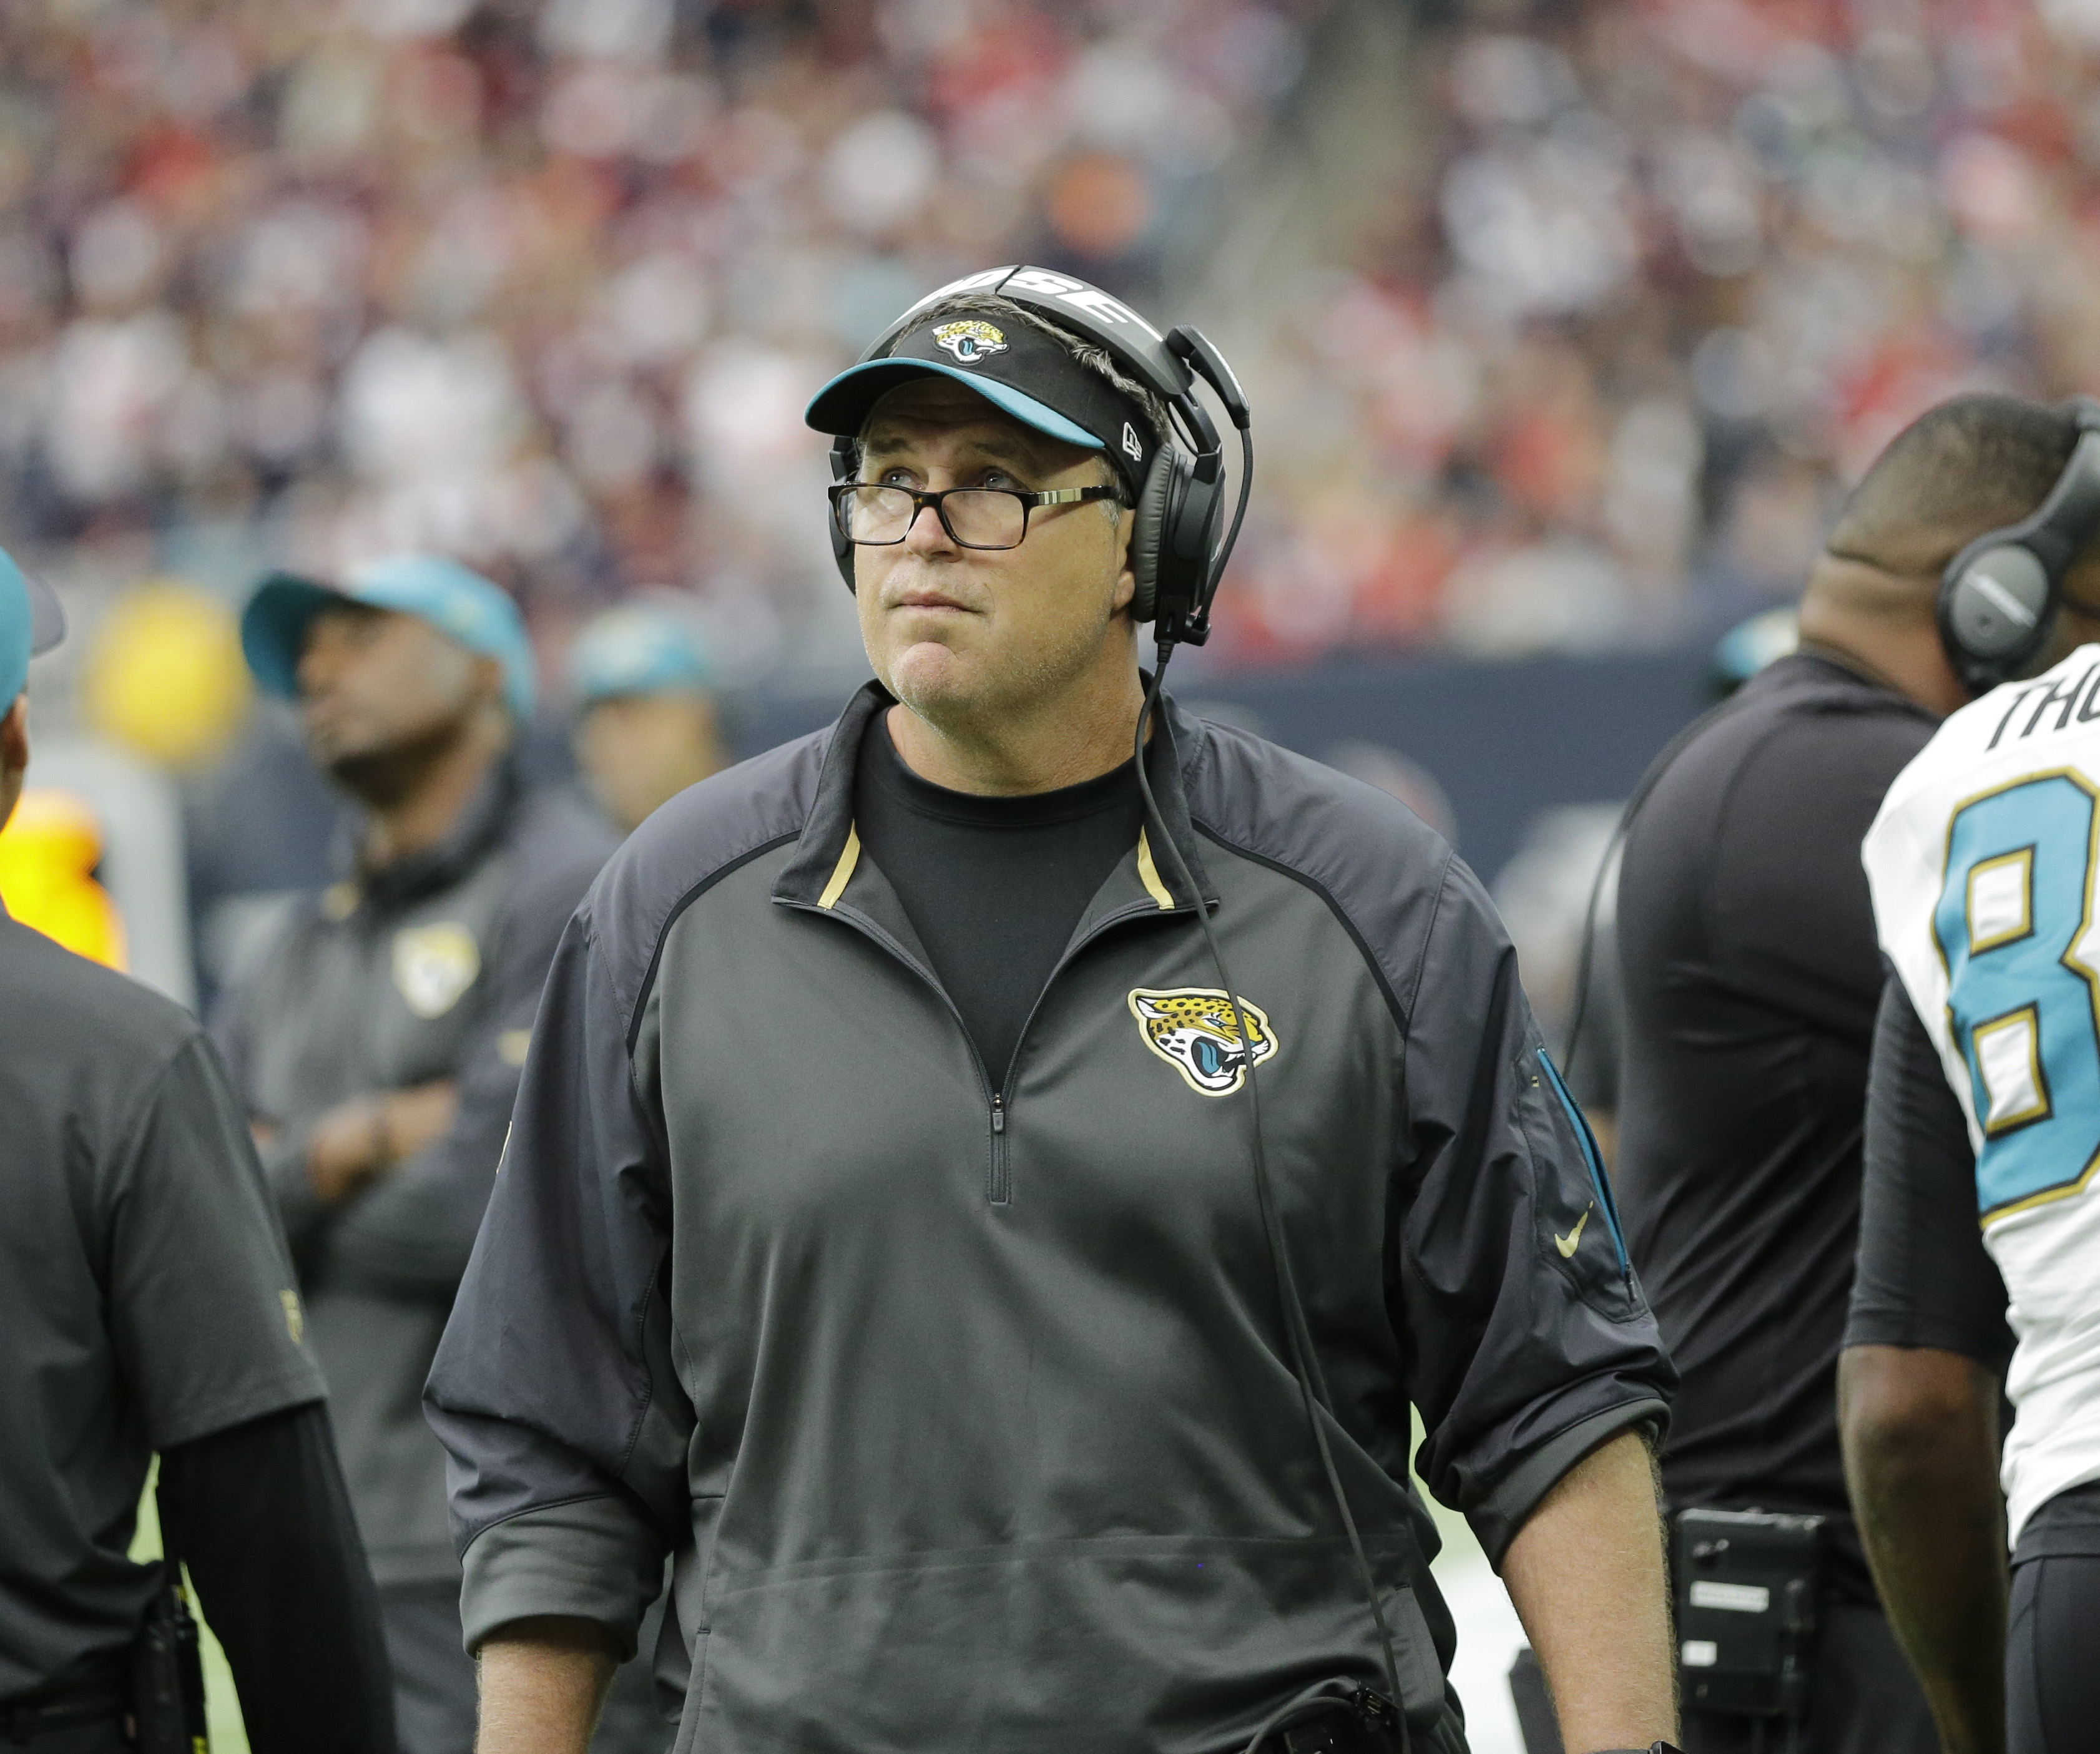 Jacksonville Jaguars assistant coach Doug Marrone is shown during the first half an NFL football game Sunday, Jan. 3, 2016, in Houston. (AP Photo/David J. Phillip)